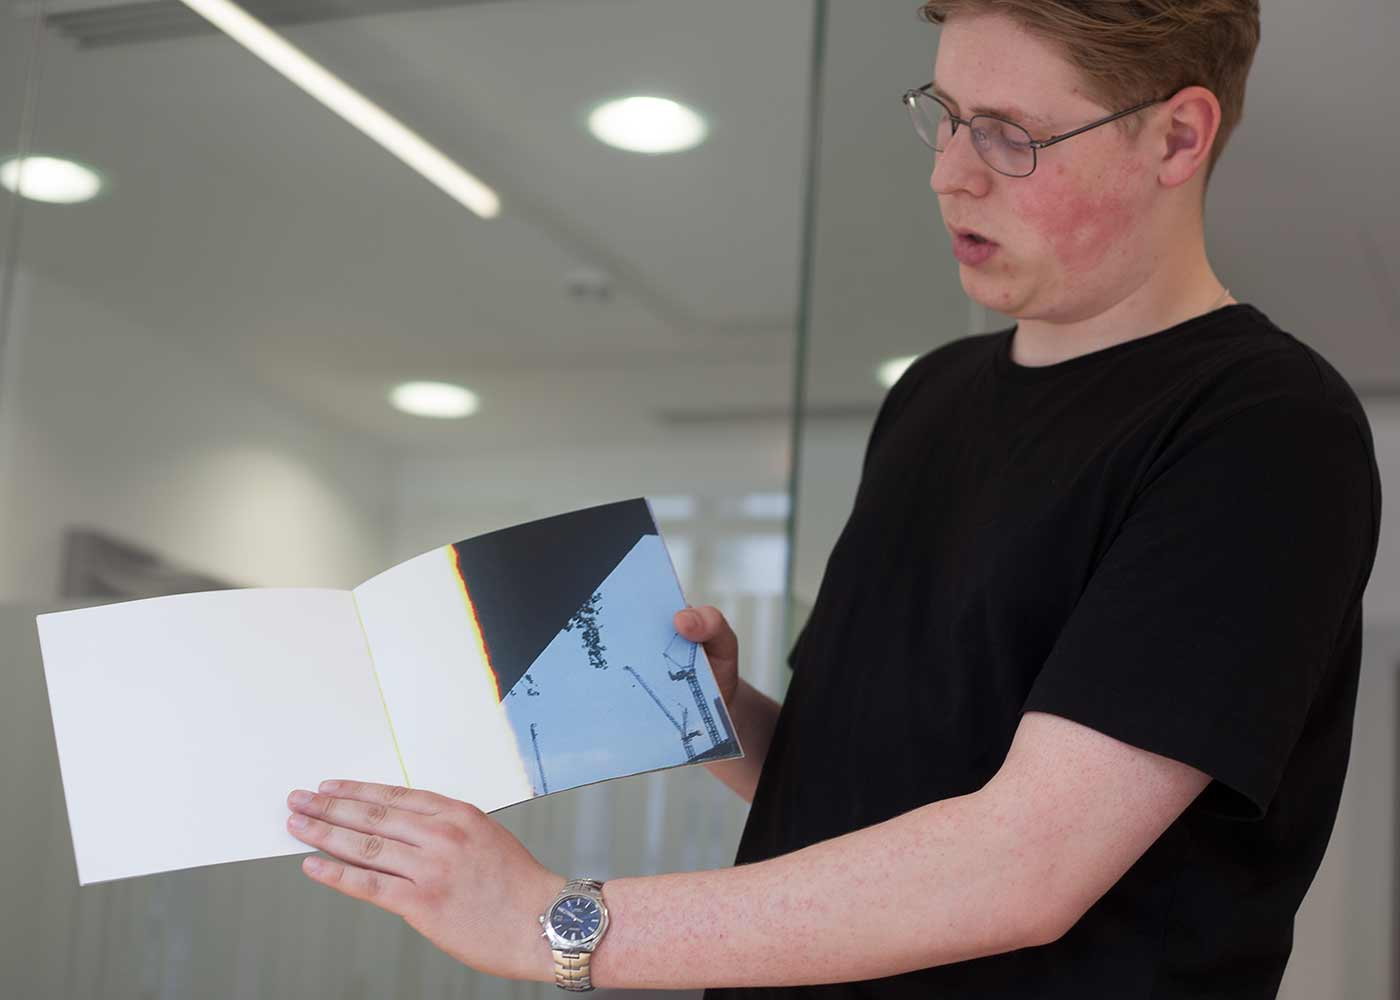 Alex Smith studies photography in the BA Photography (2nd year) at the School of Arts and Creative Industries, LSBU, and presented his new photobook OVERGROWN